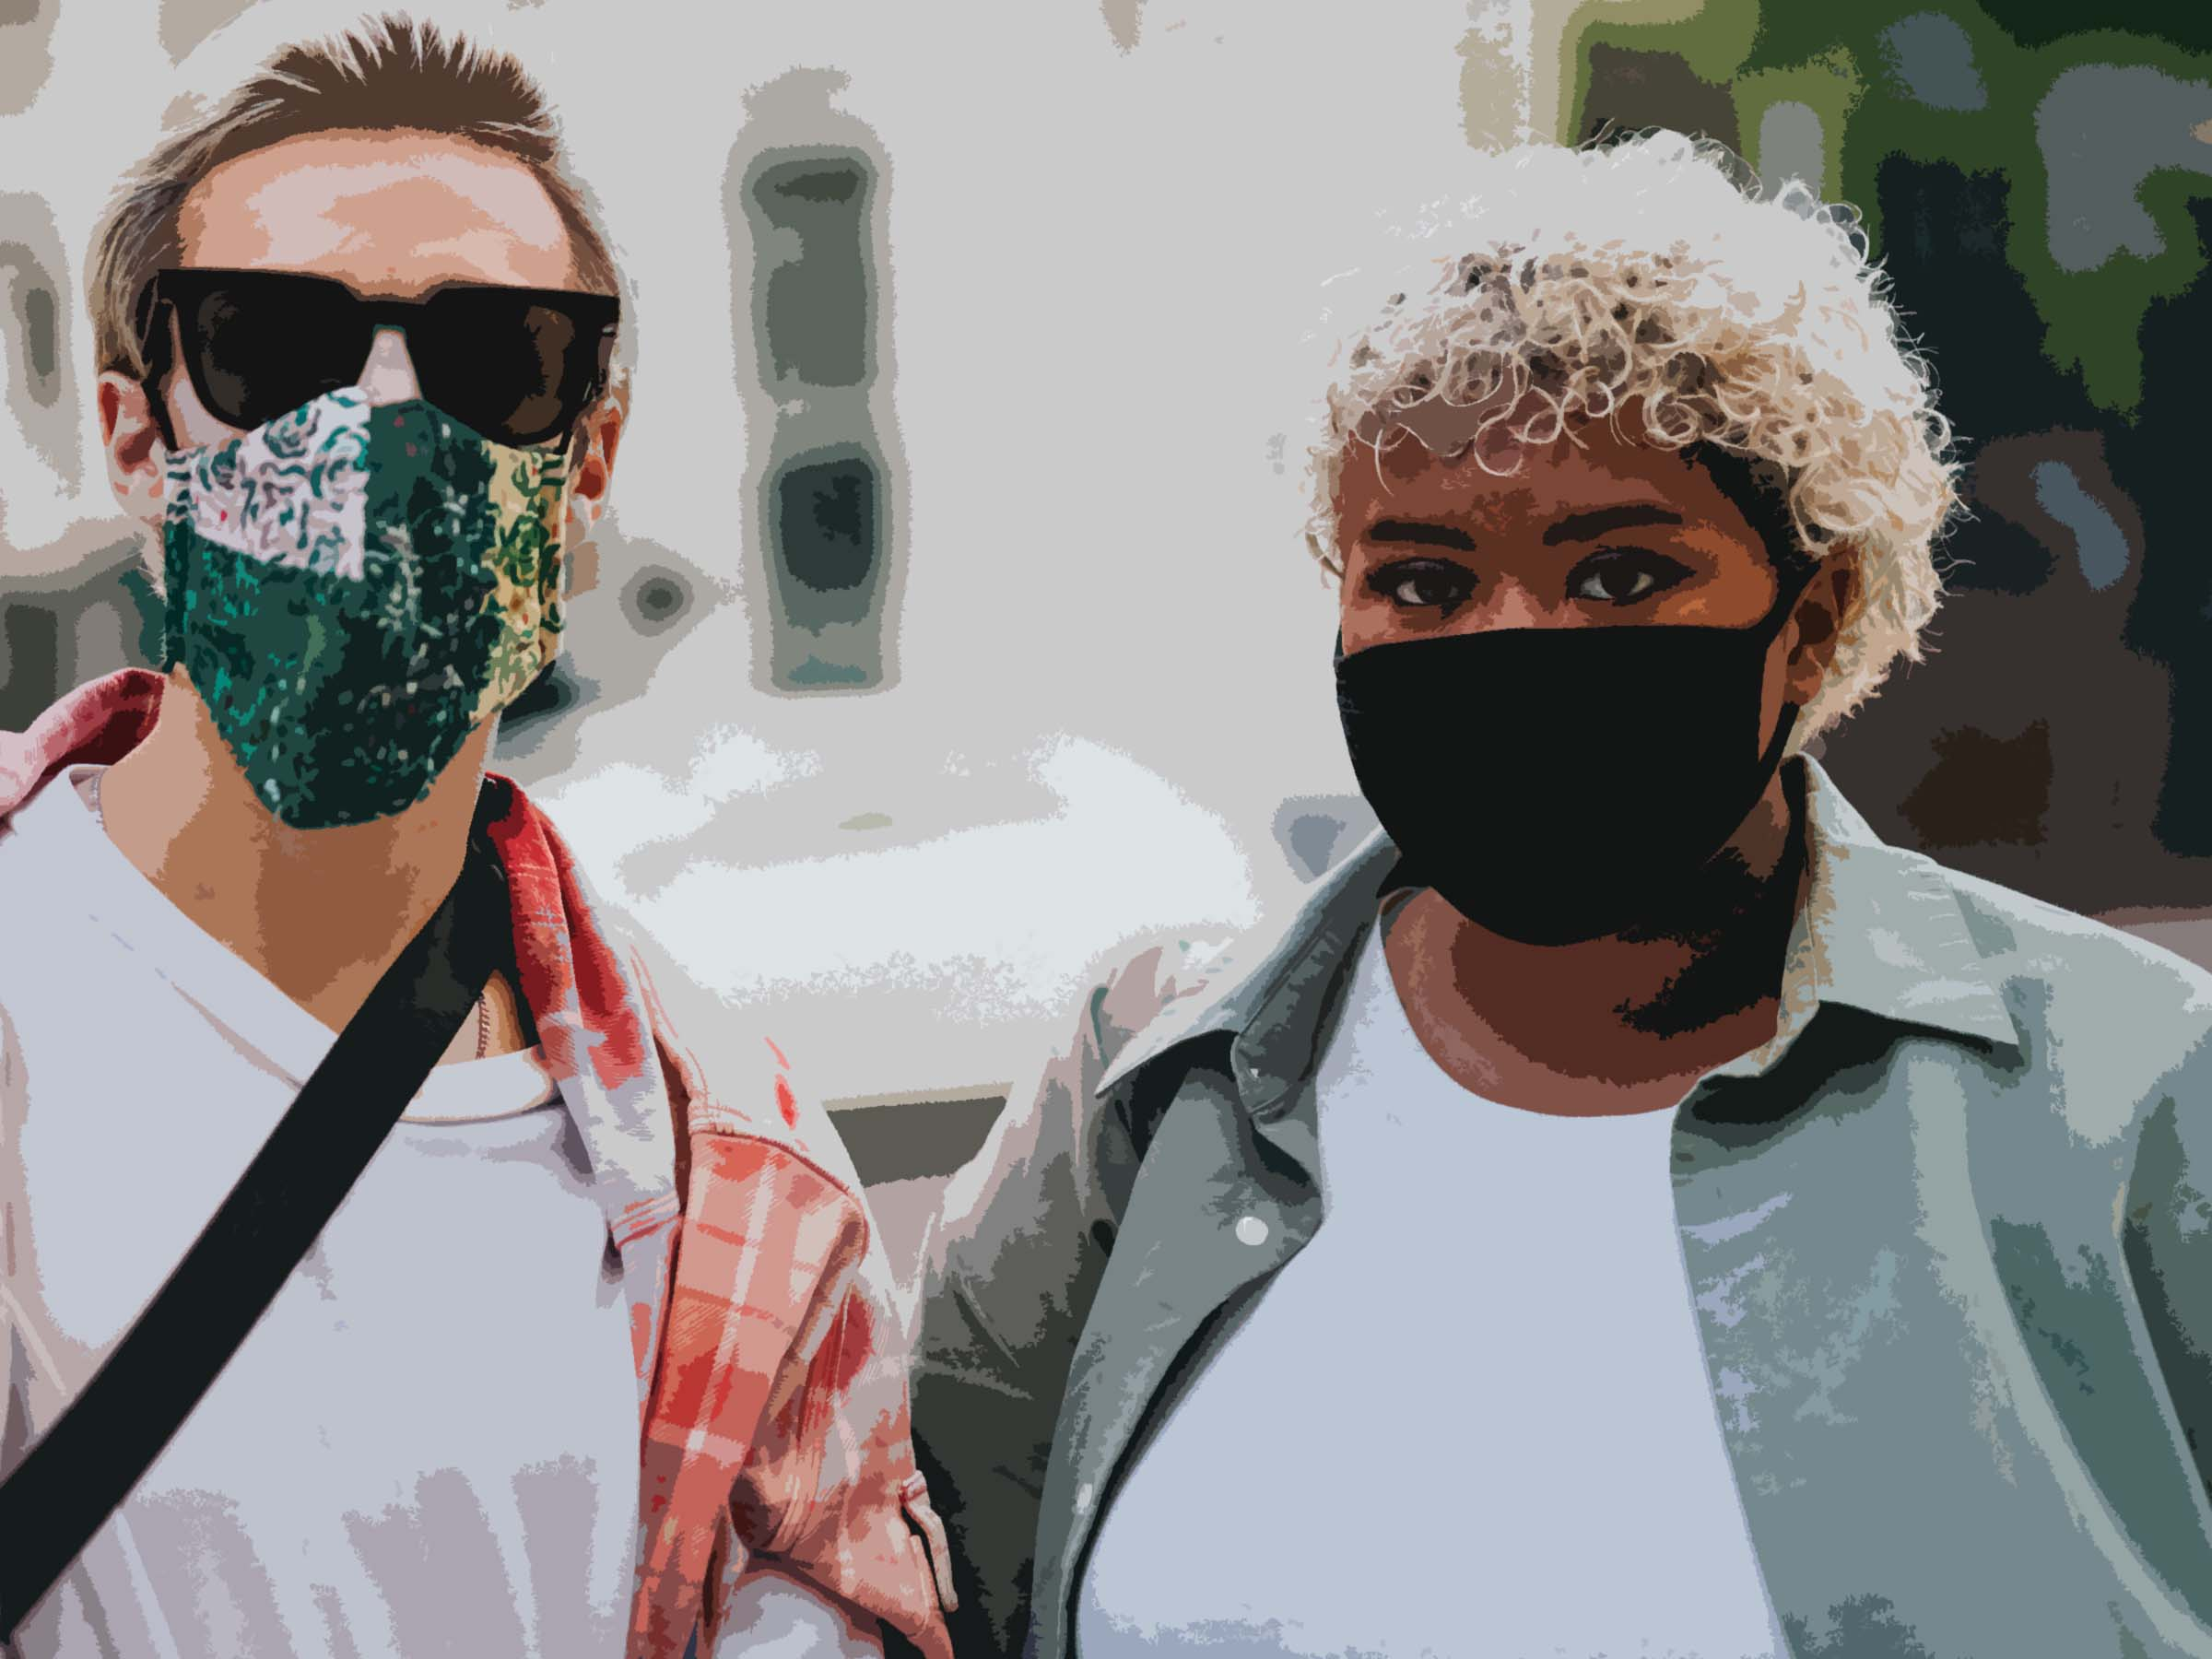 Two young people stand together wearing COVID-19 face masks. On the left is a White man and on the right is a Black woman